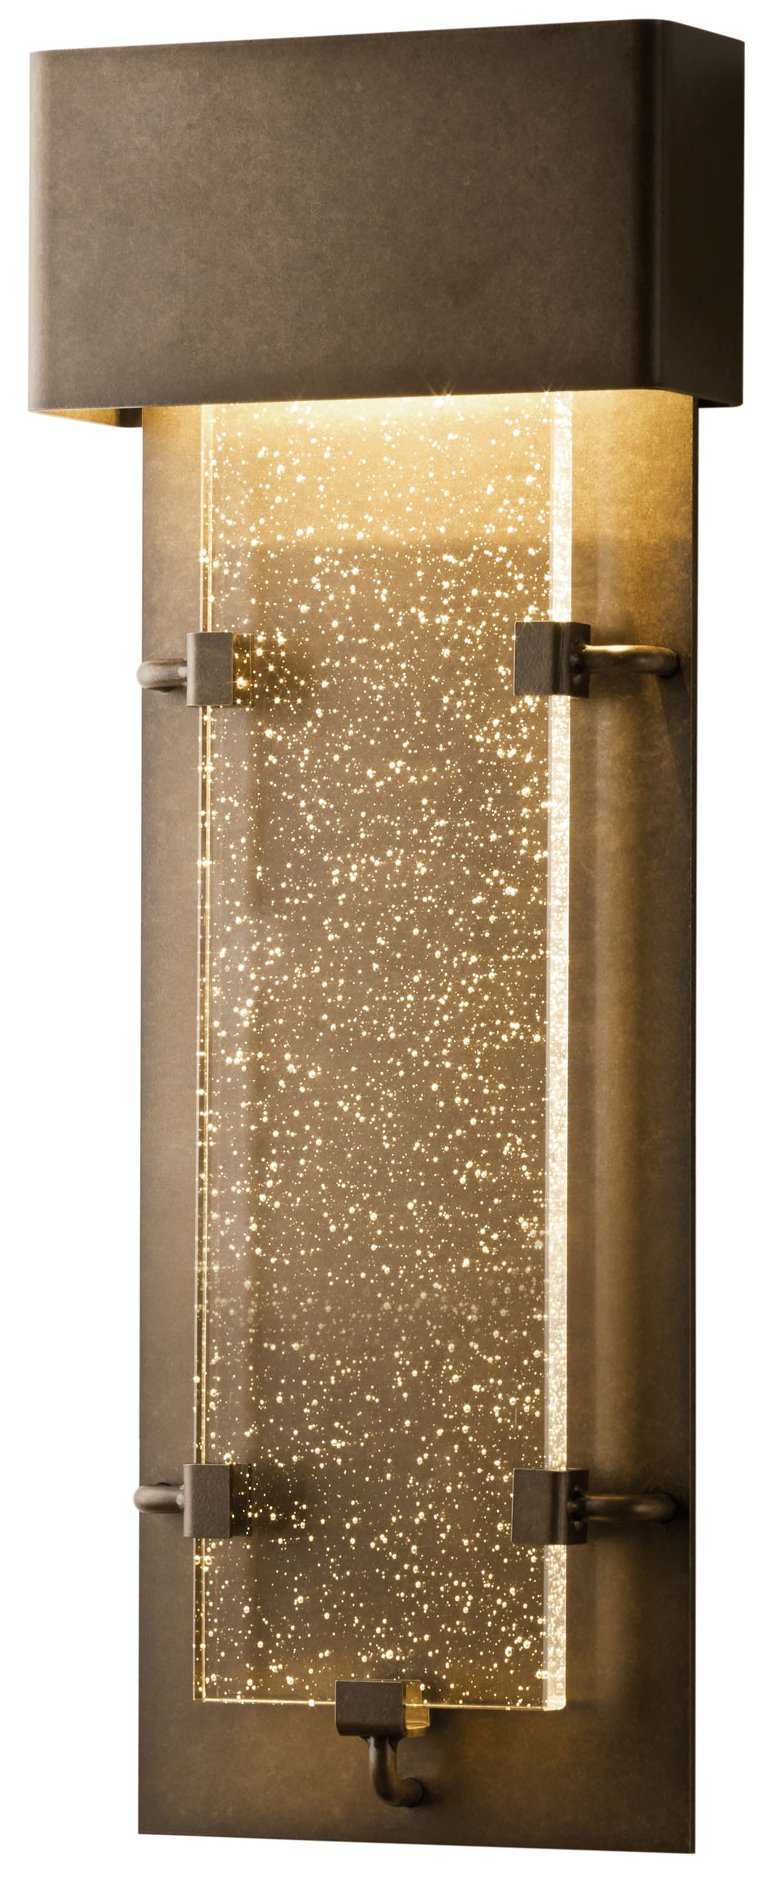 Hubbardton Forge 302501 Ursa Led Modern Contemporary Outdoor Wall Sconce Small Hf 302501